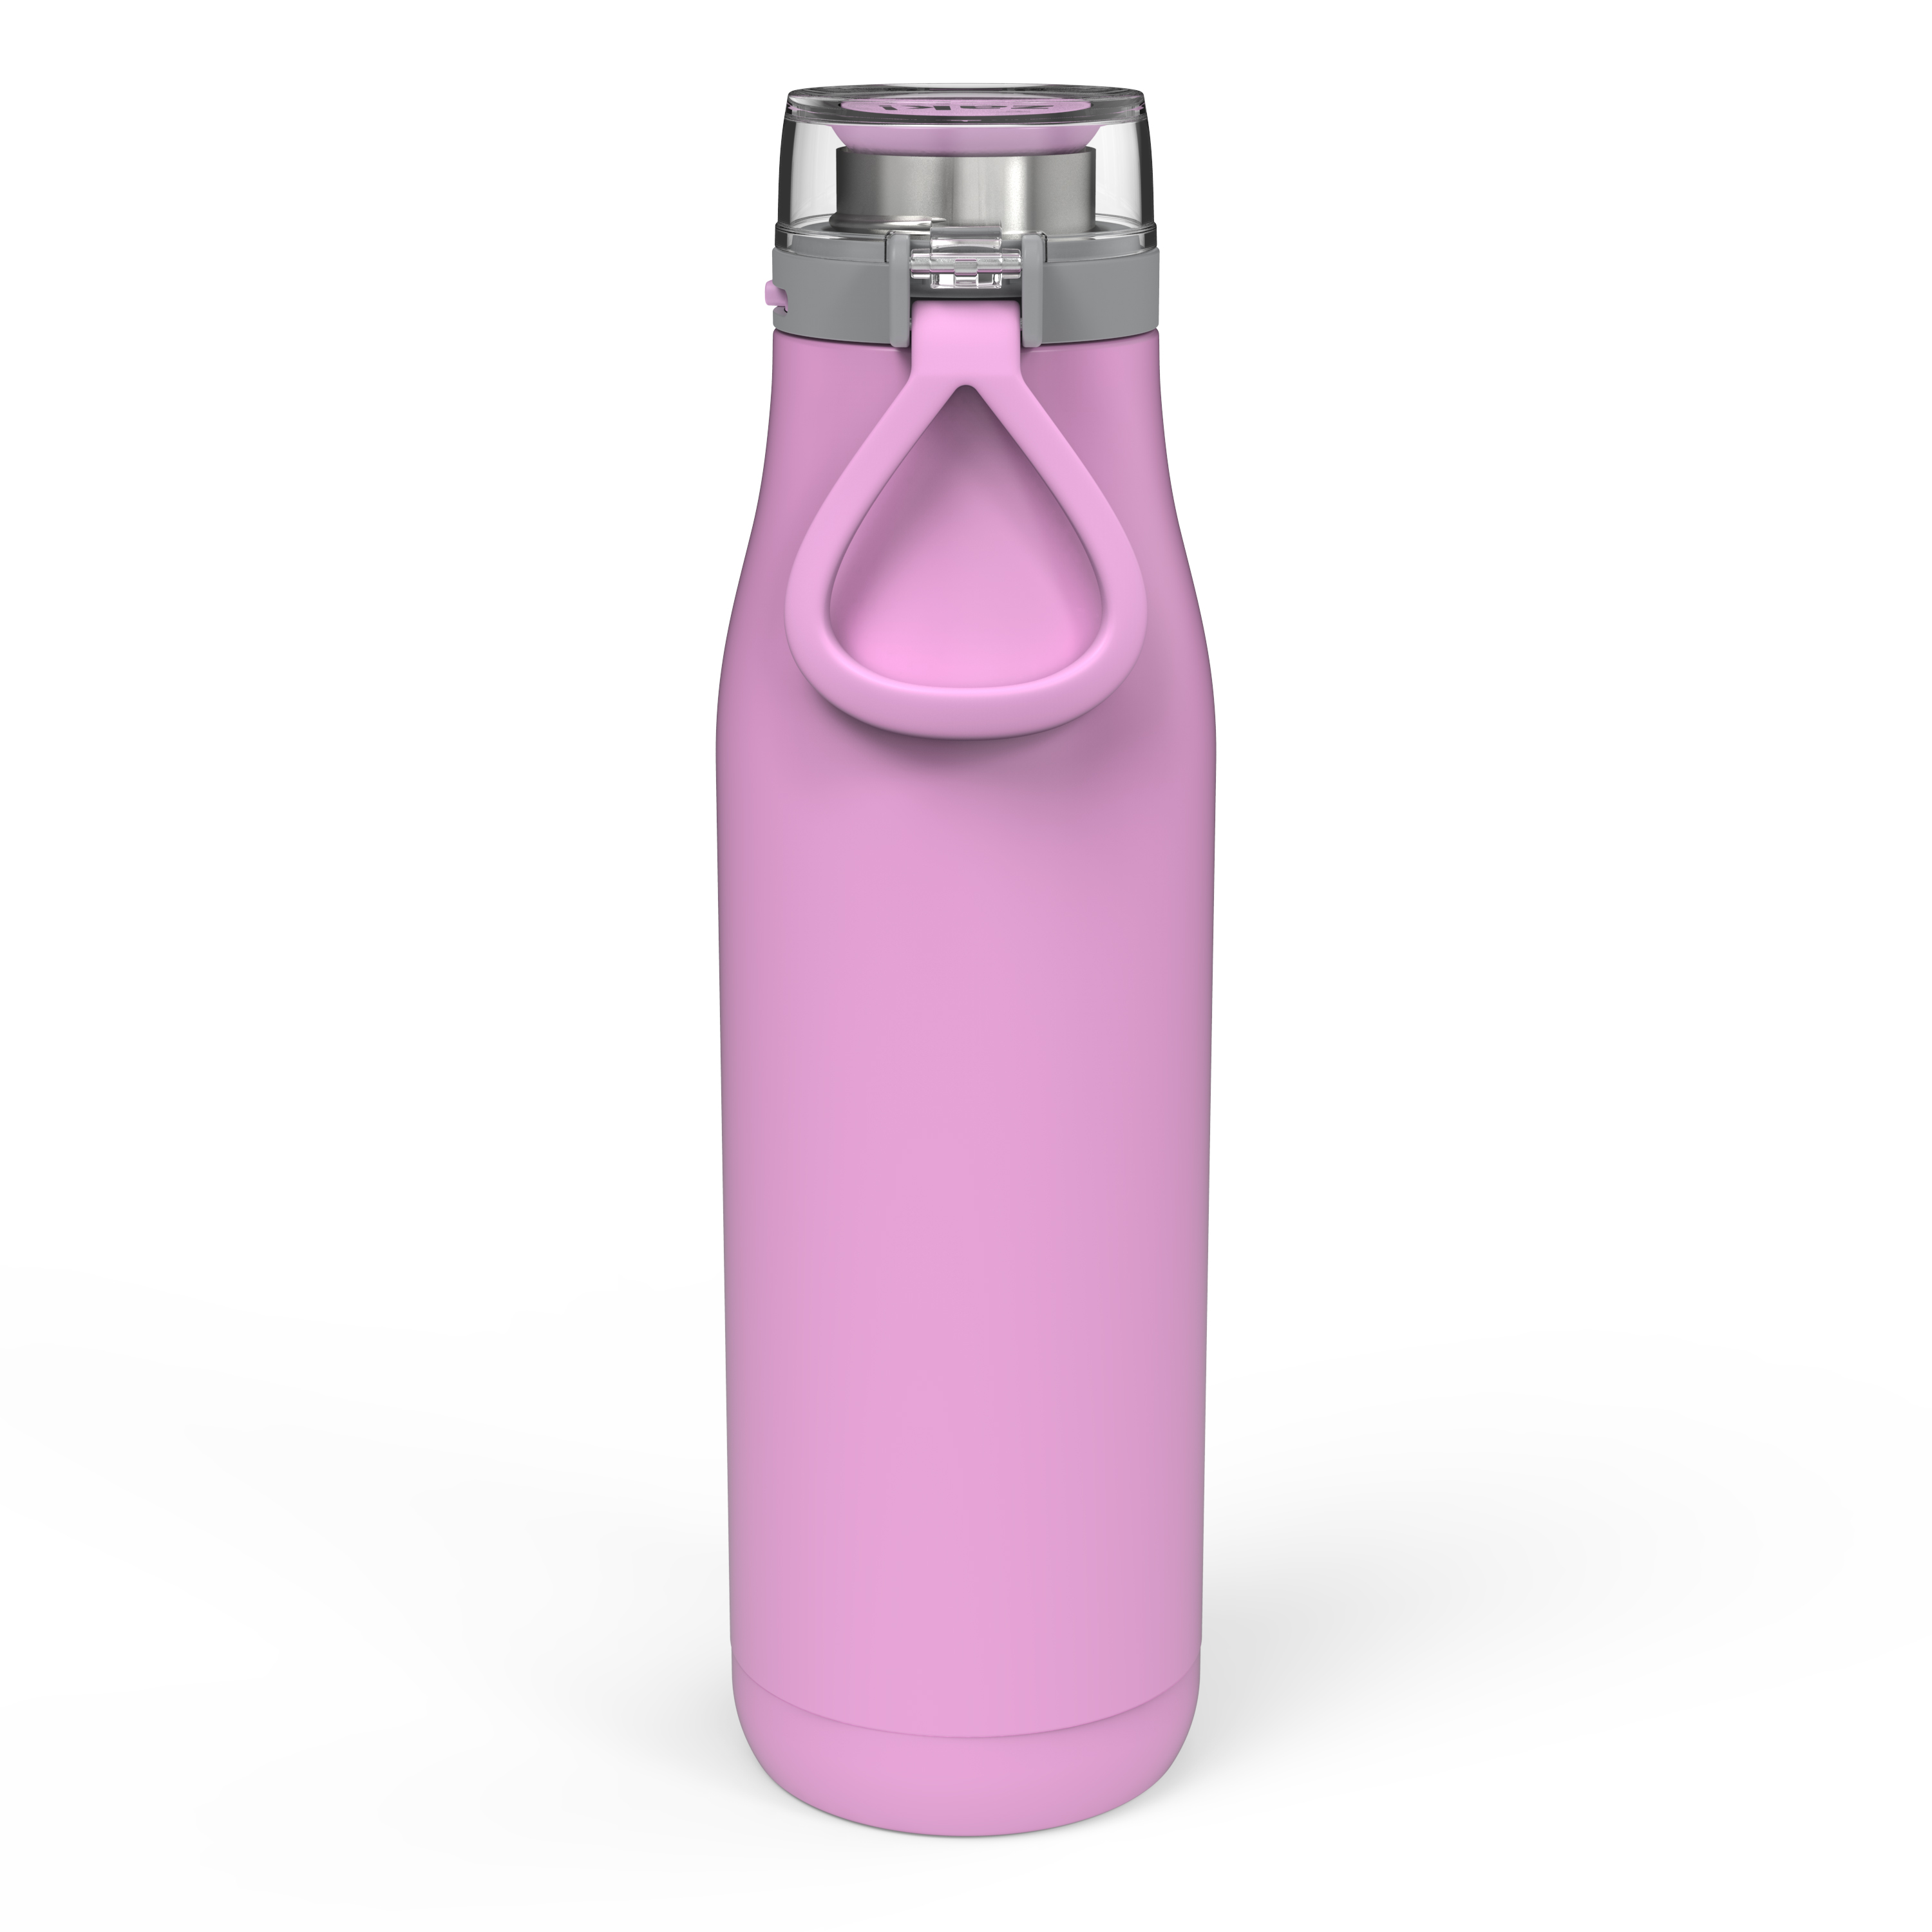 Kiona 29 ounce Vacuum Insulated Stainless Steel Tumbler, Lilac slideshow image 4